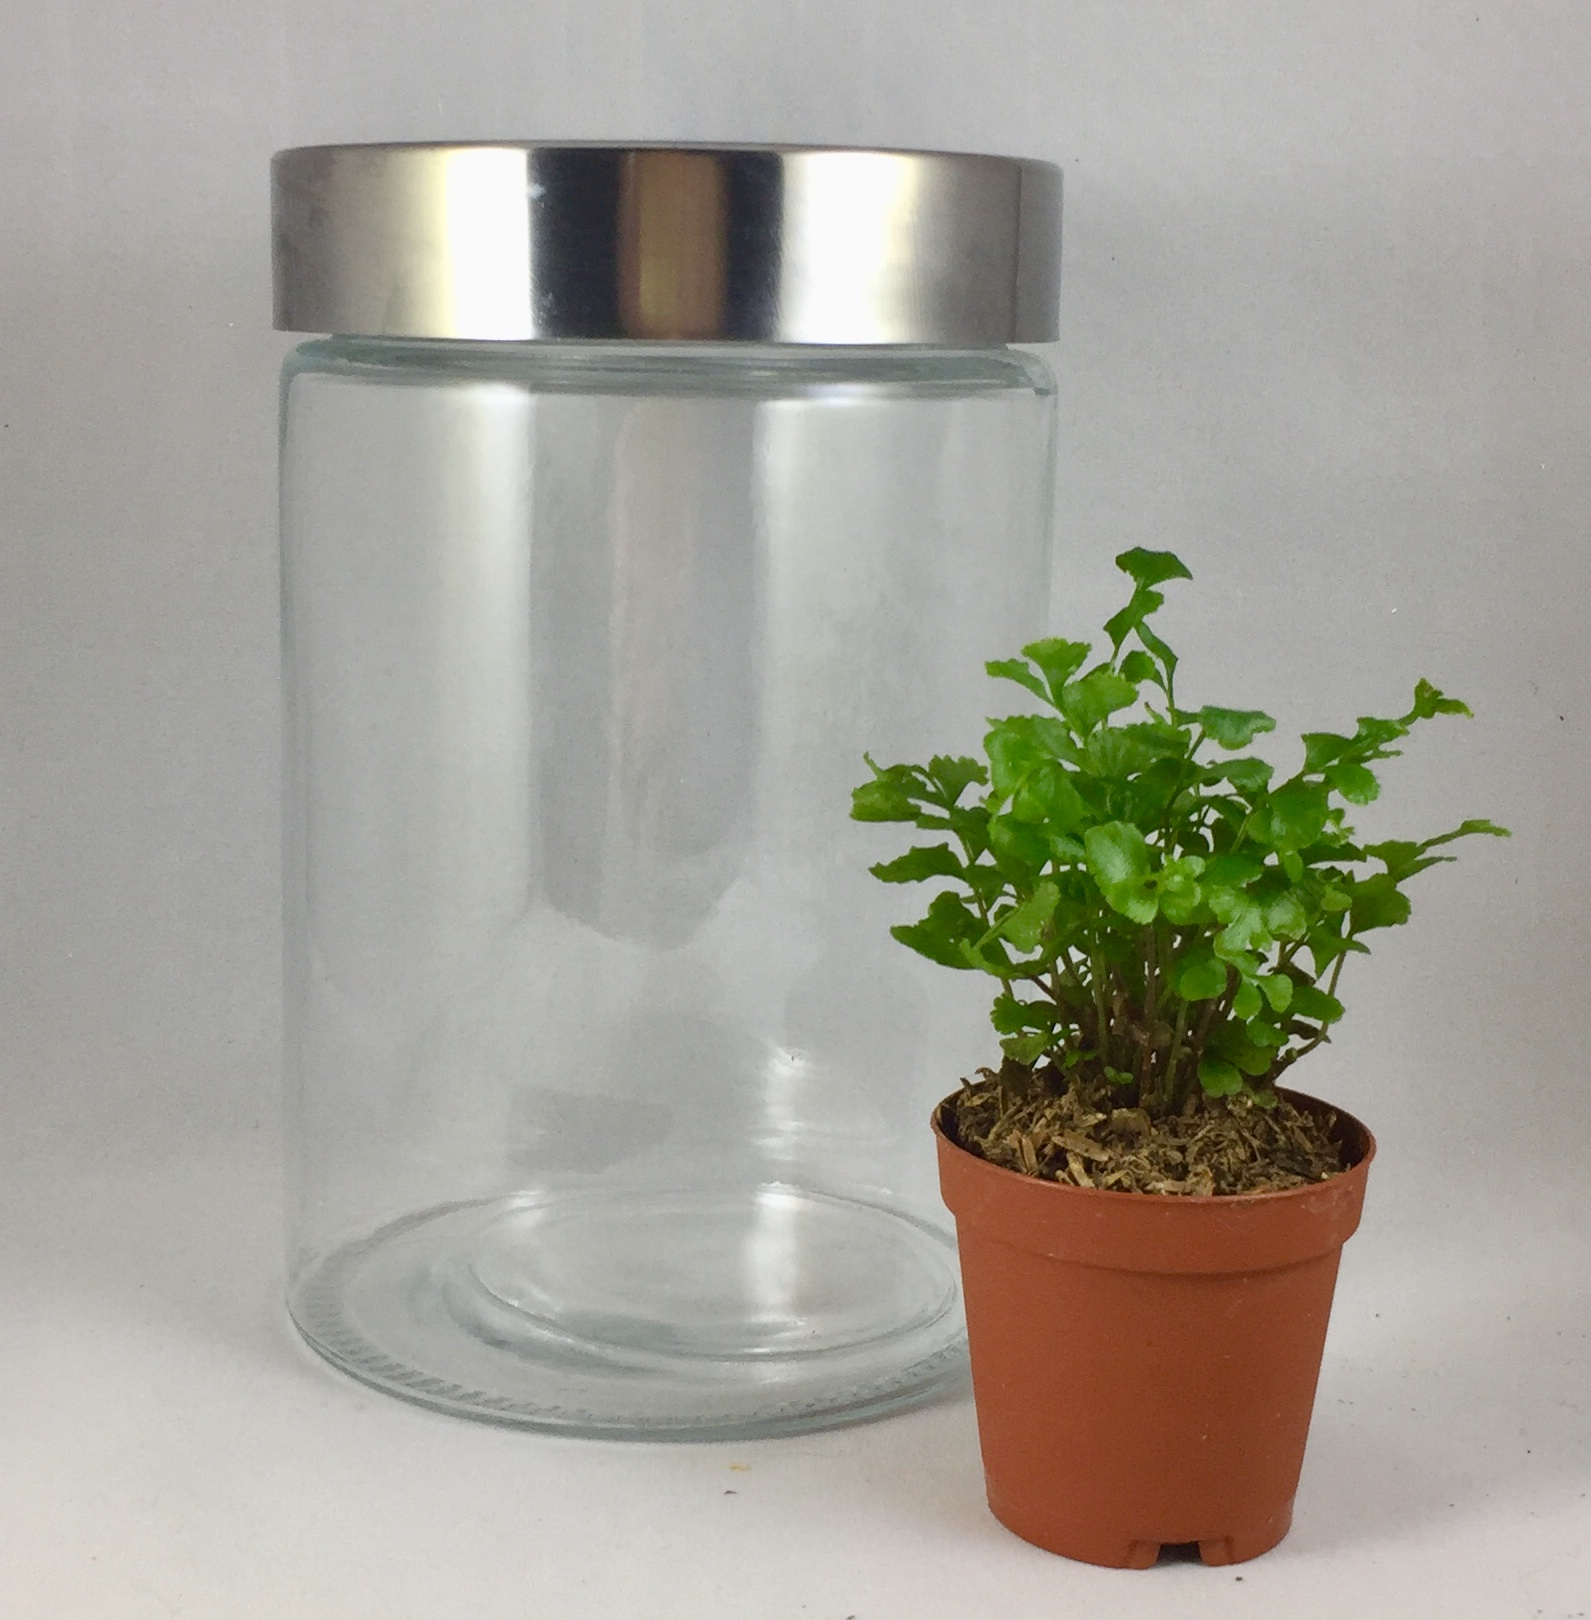 Small Upright Terrarium - $20 includes: 6 1/2 inch upright jar, one plant, base sands, dirt, decorations and tote bag.